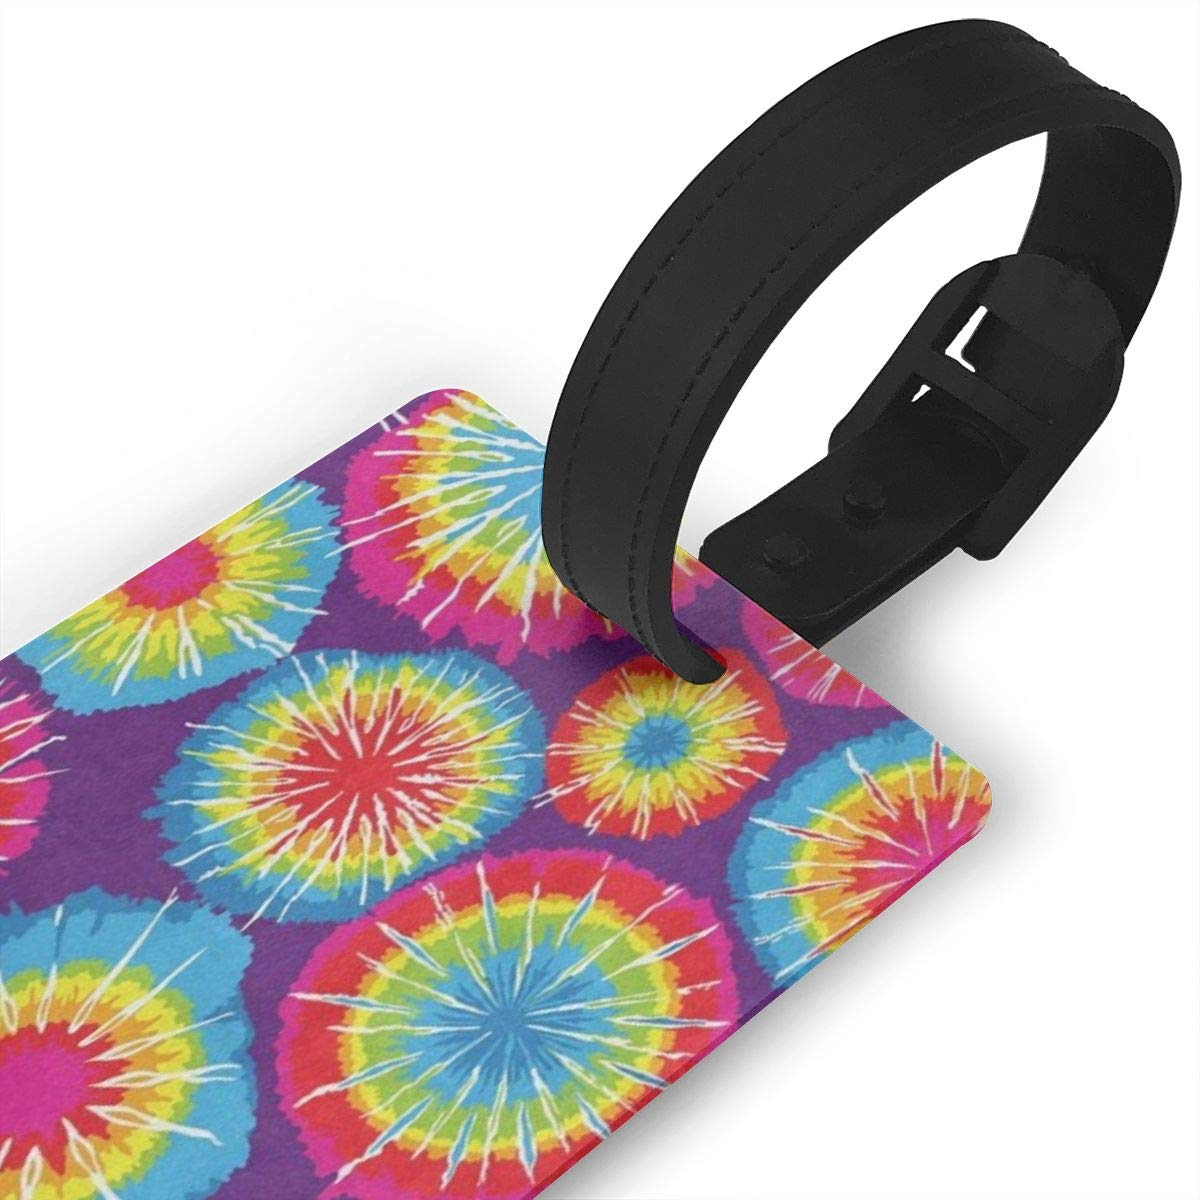 Luggage Tags Tie Dyed Bag Tag for Travel 2 PCS